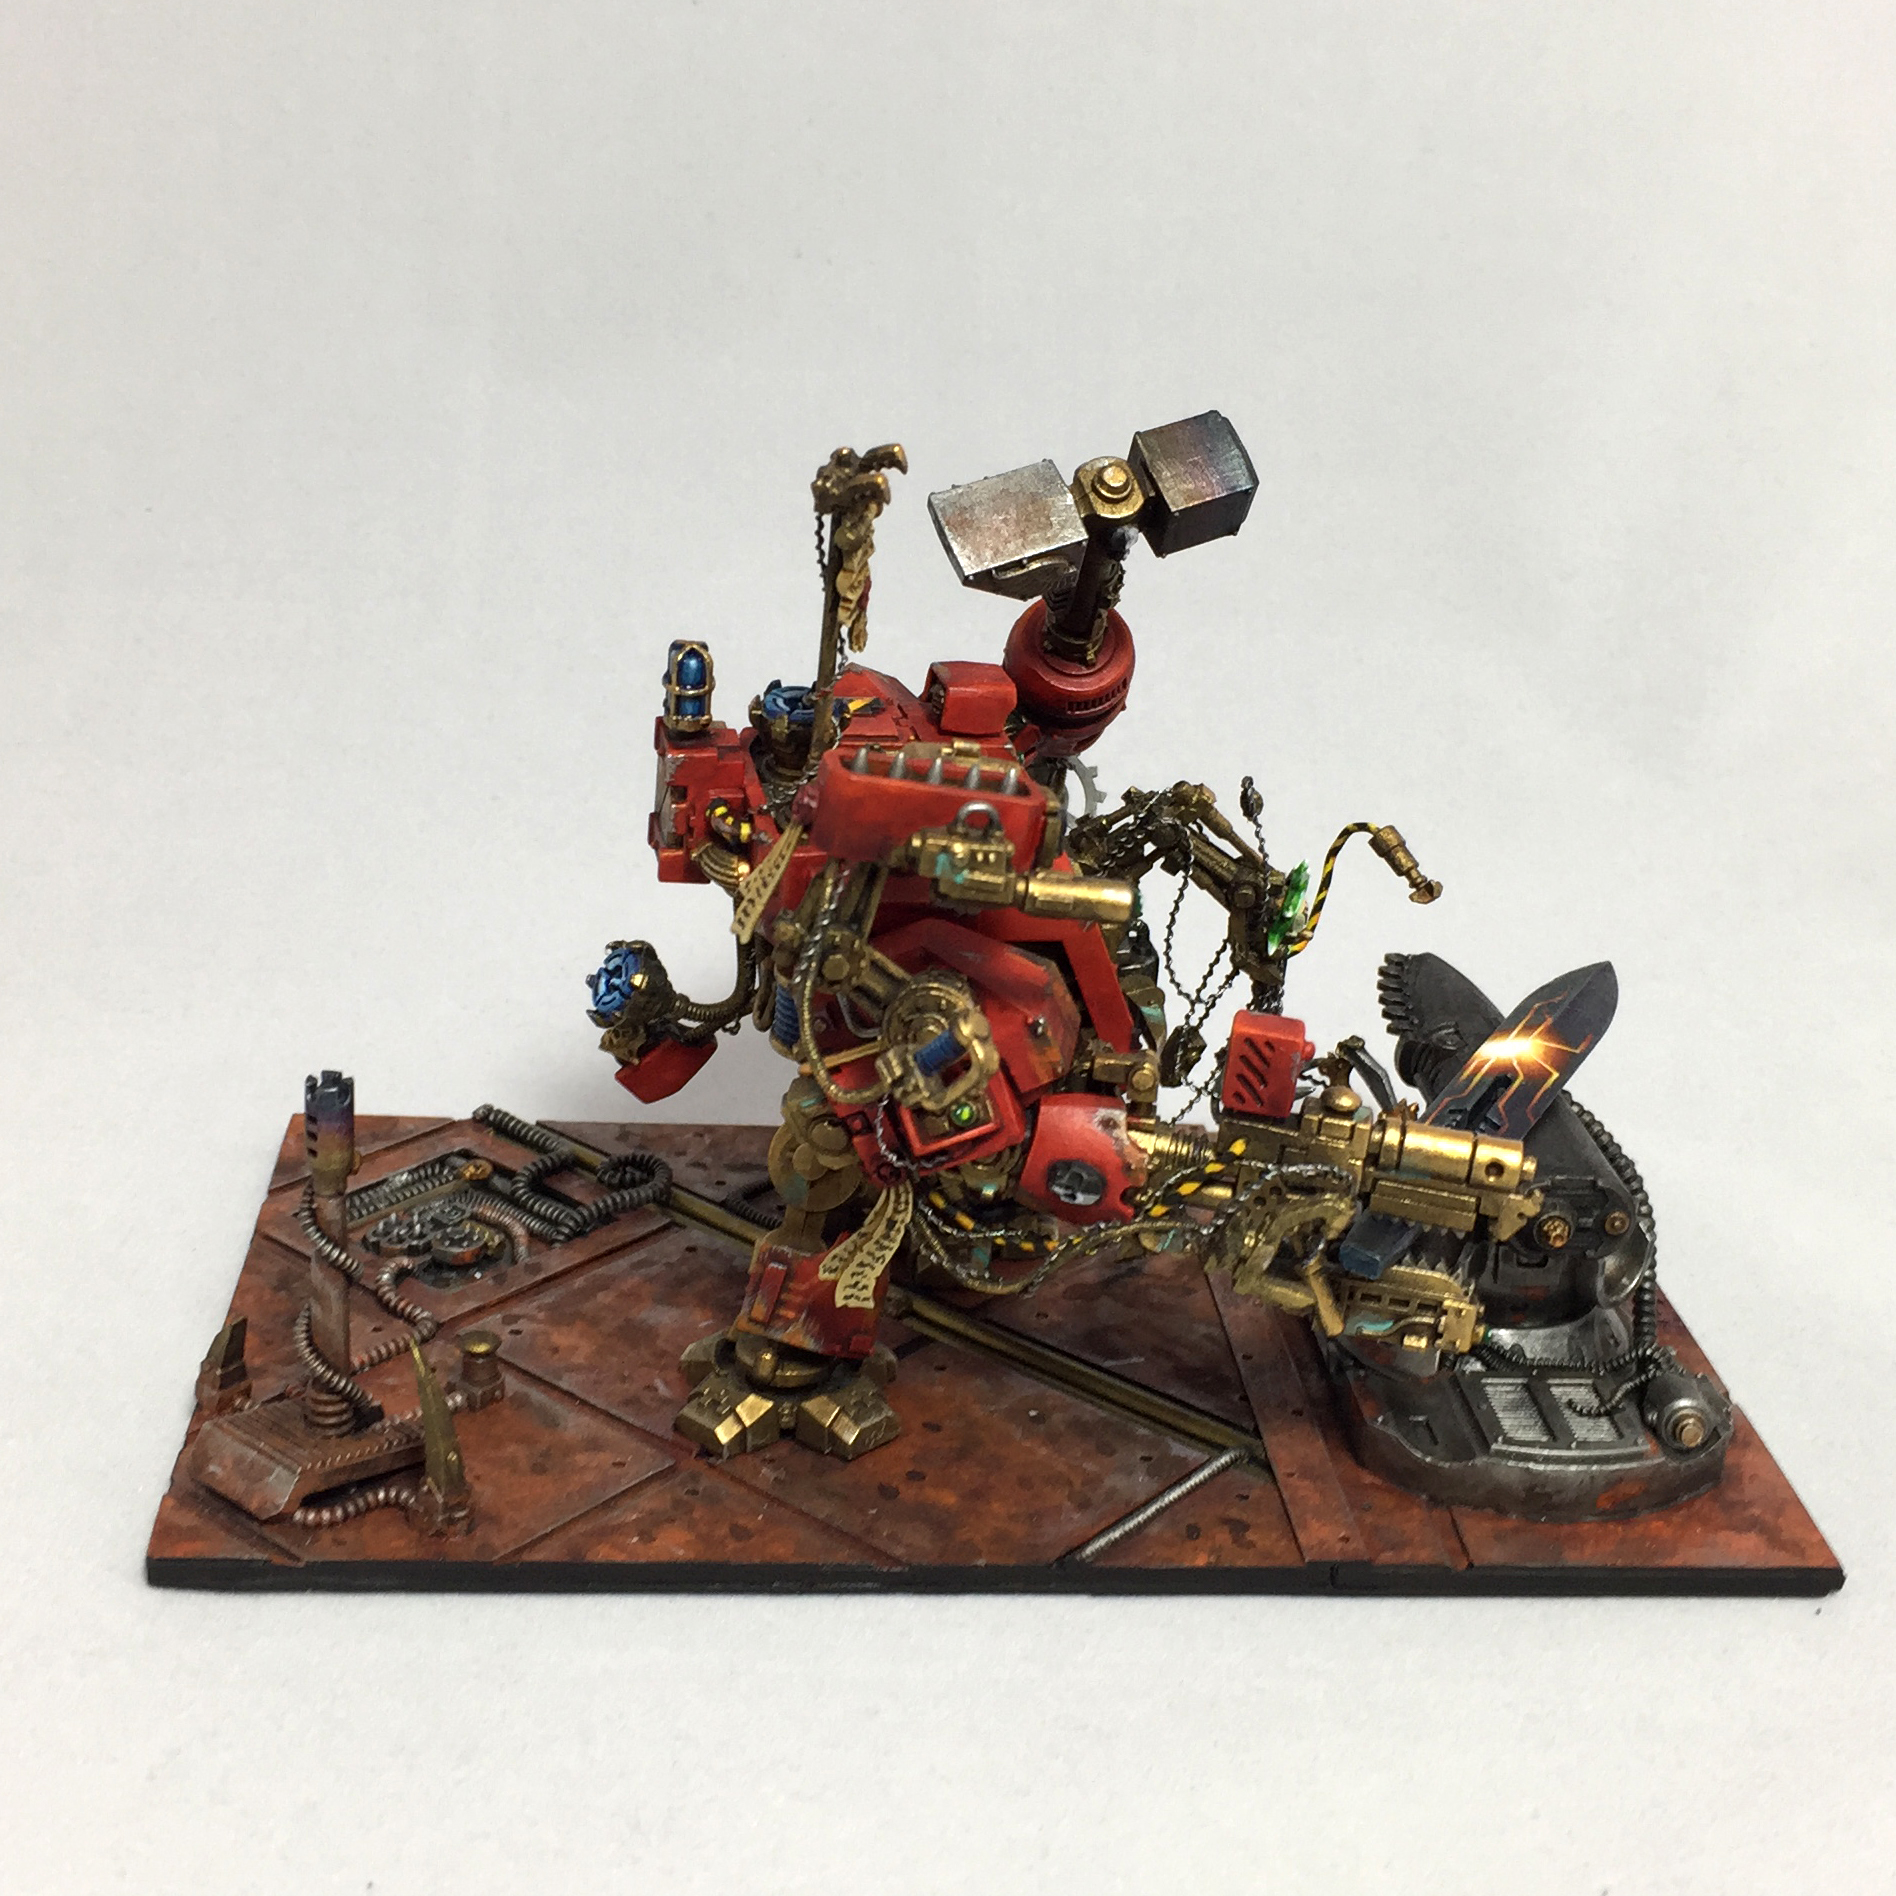 Hephaistos smith converted from a Blood Angel Dreadnought